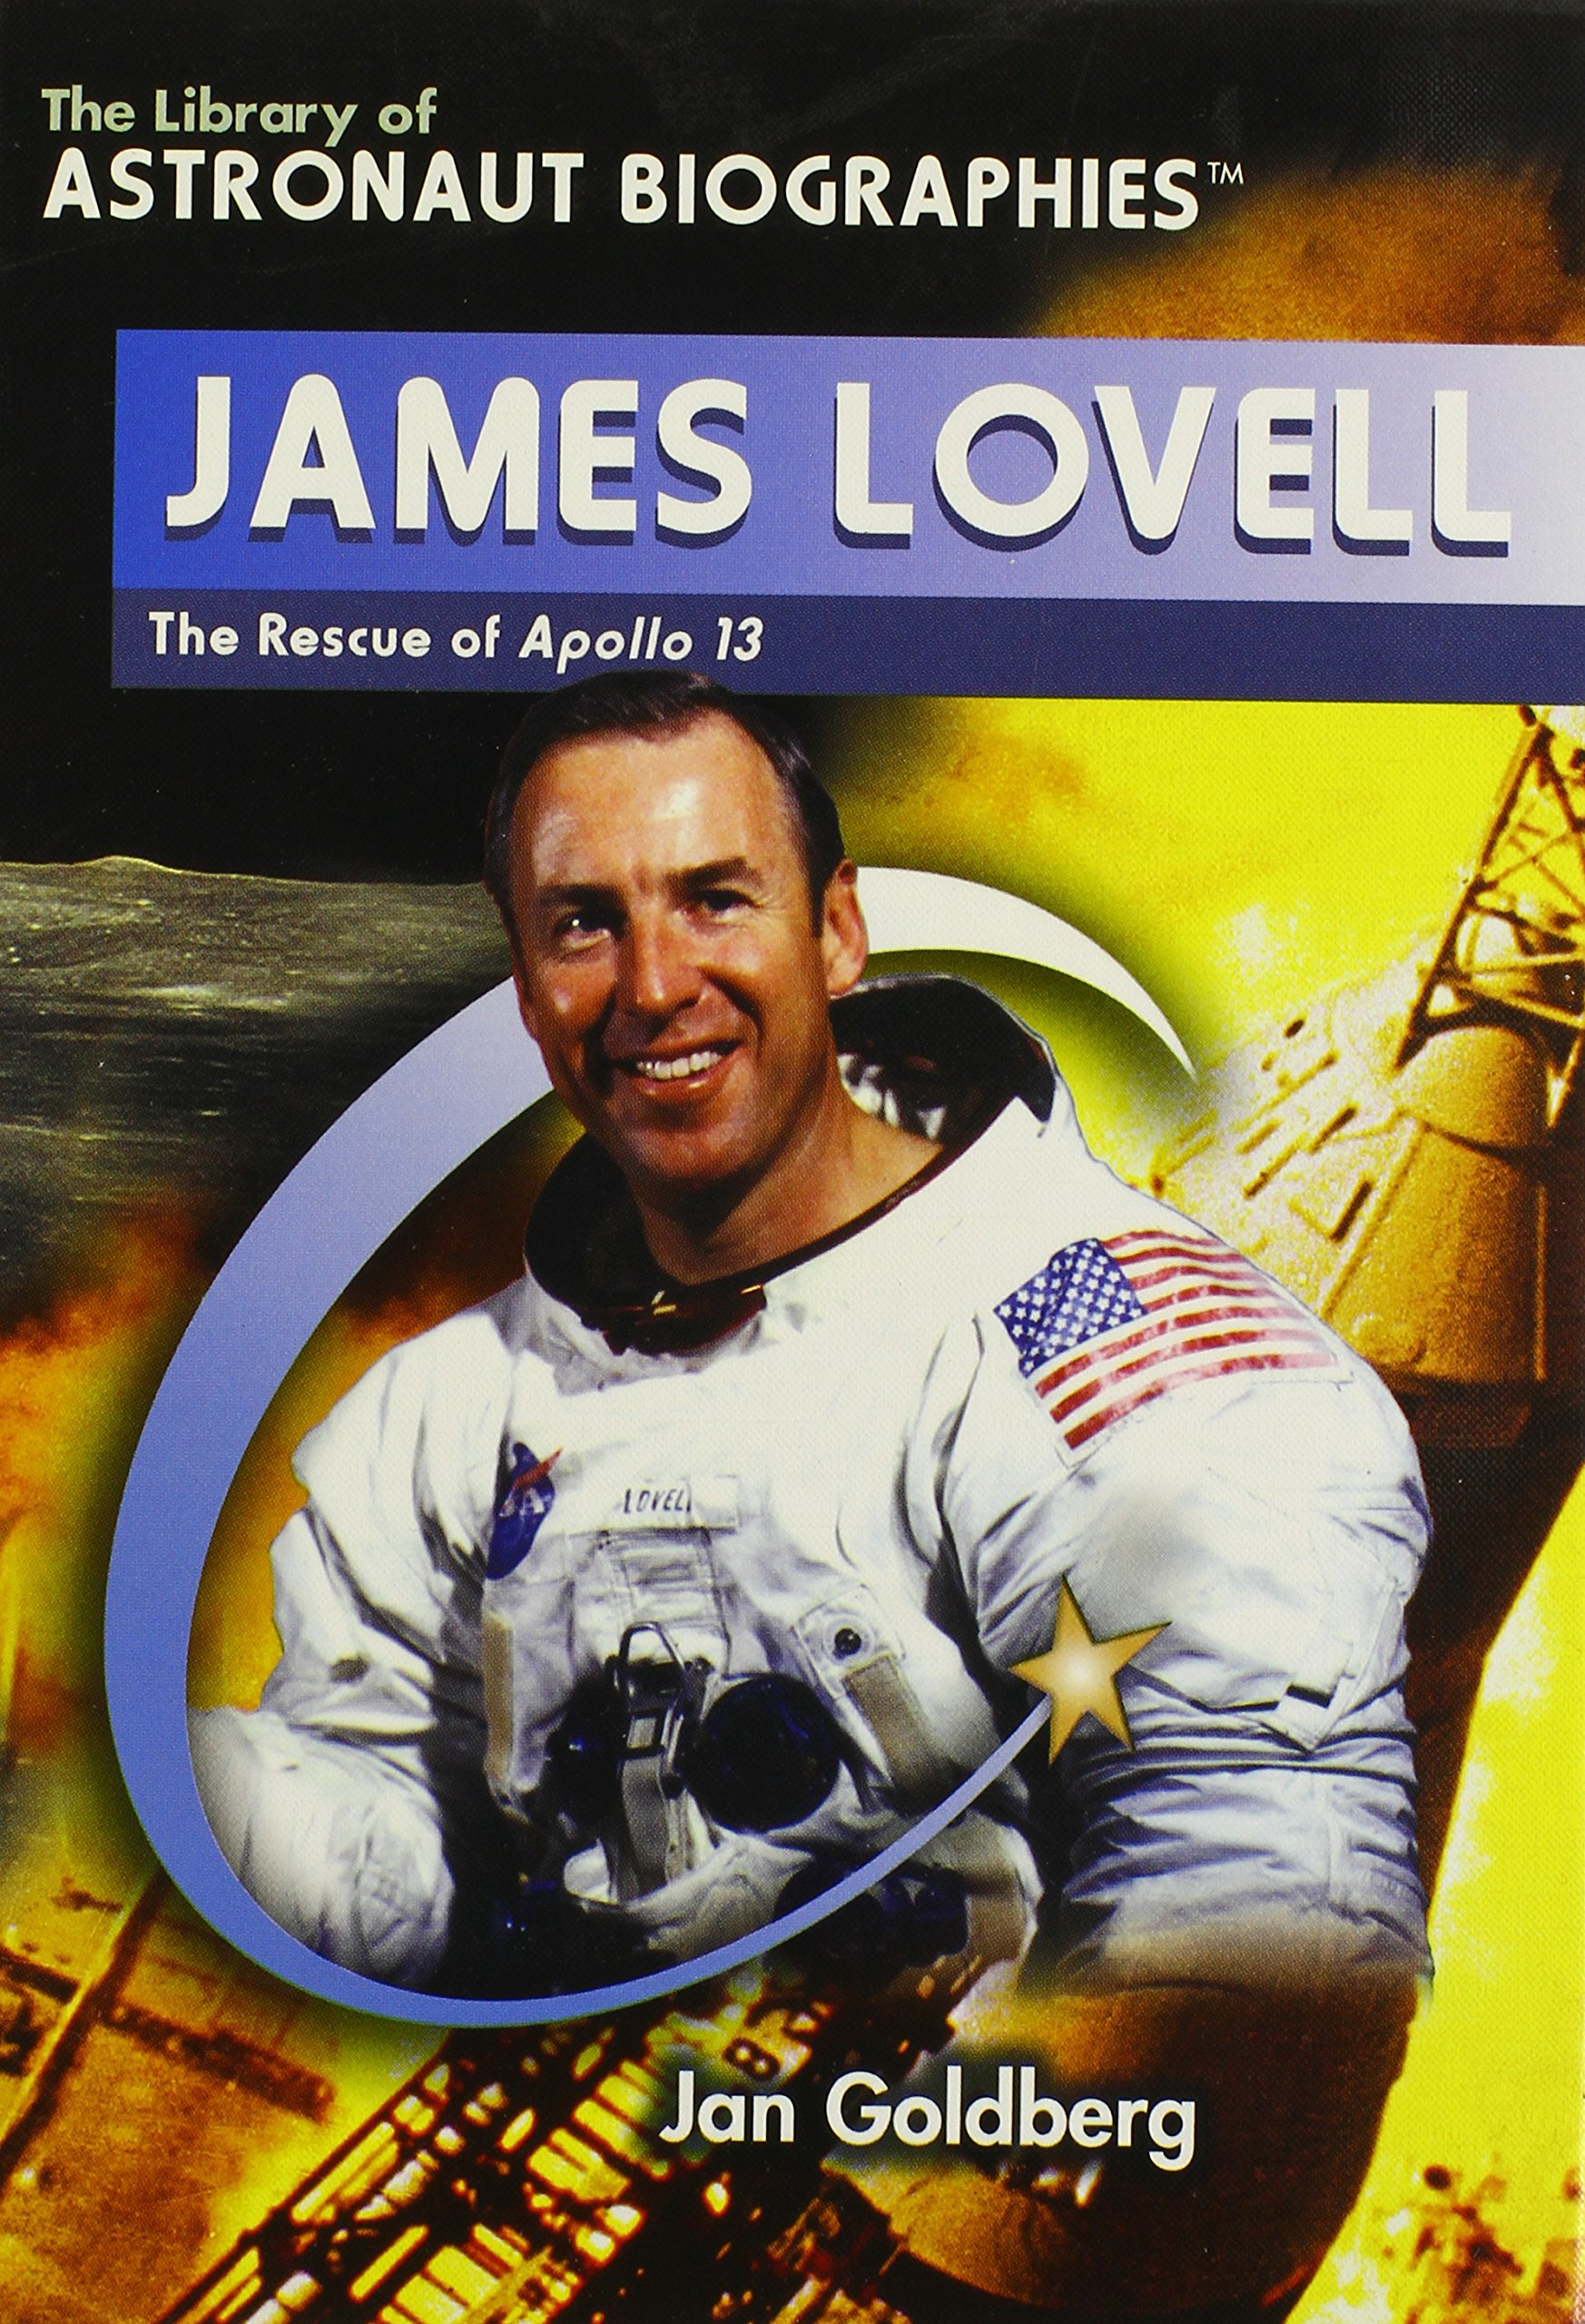 James Lovell: The Rescue of Apollo 13 (The Library of Astronaut Biographies)